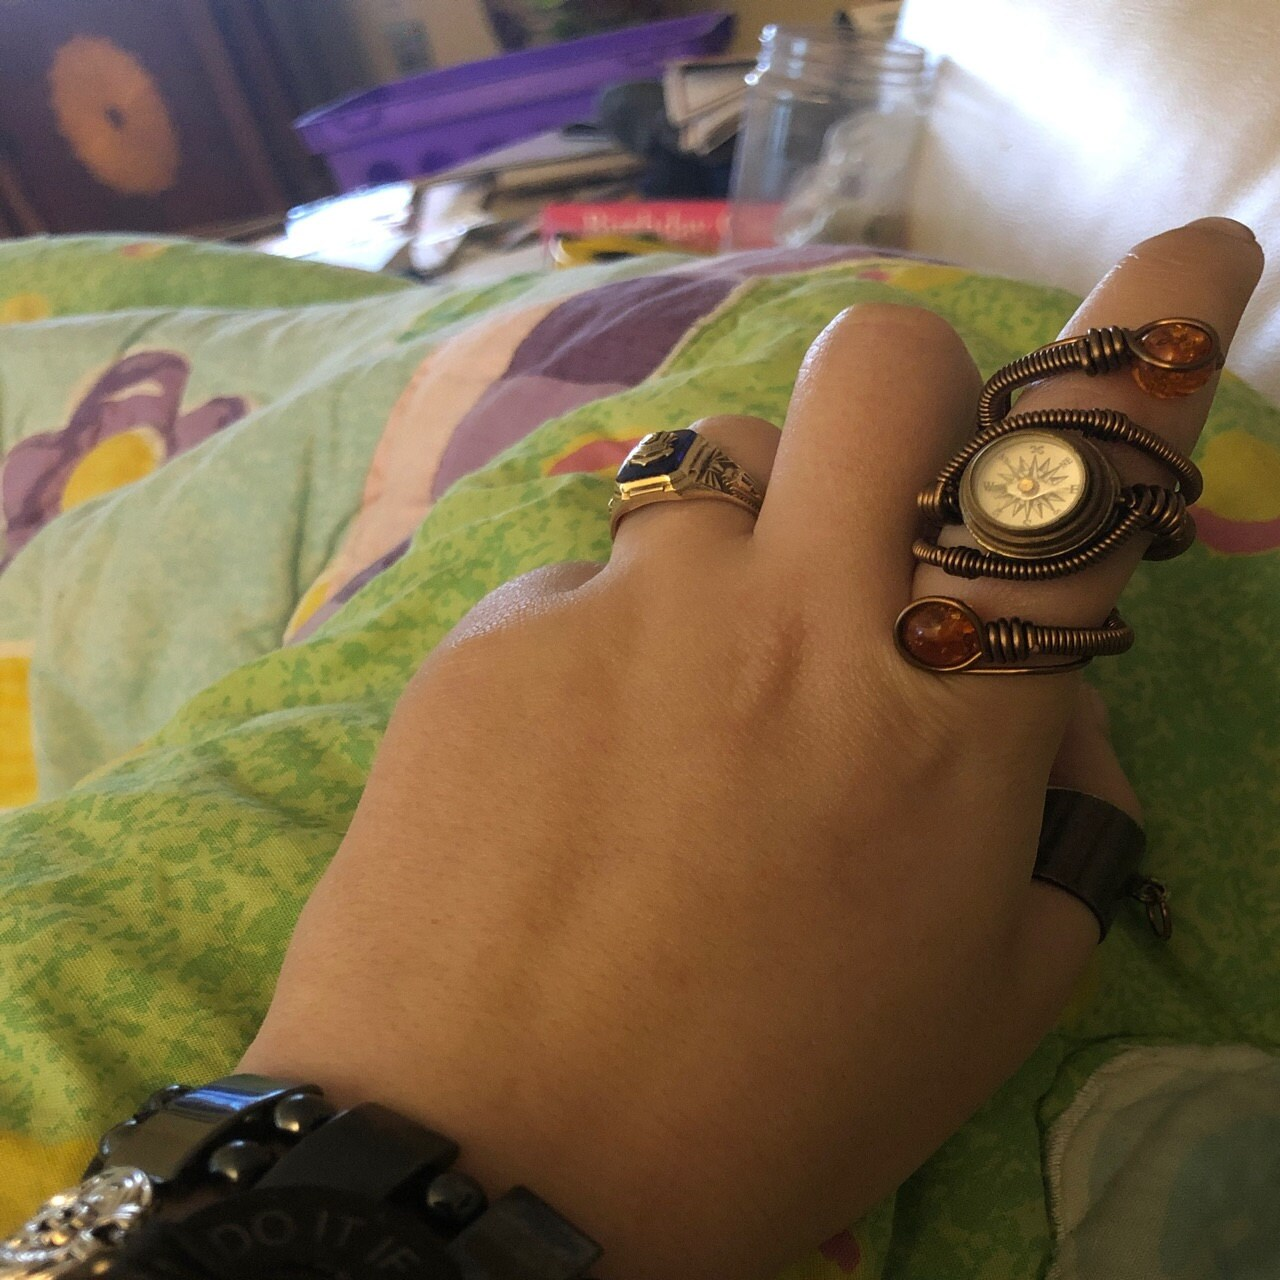 Emily Bowens added a photo of their purchase